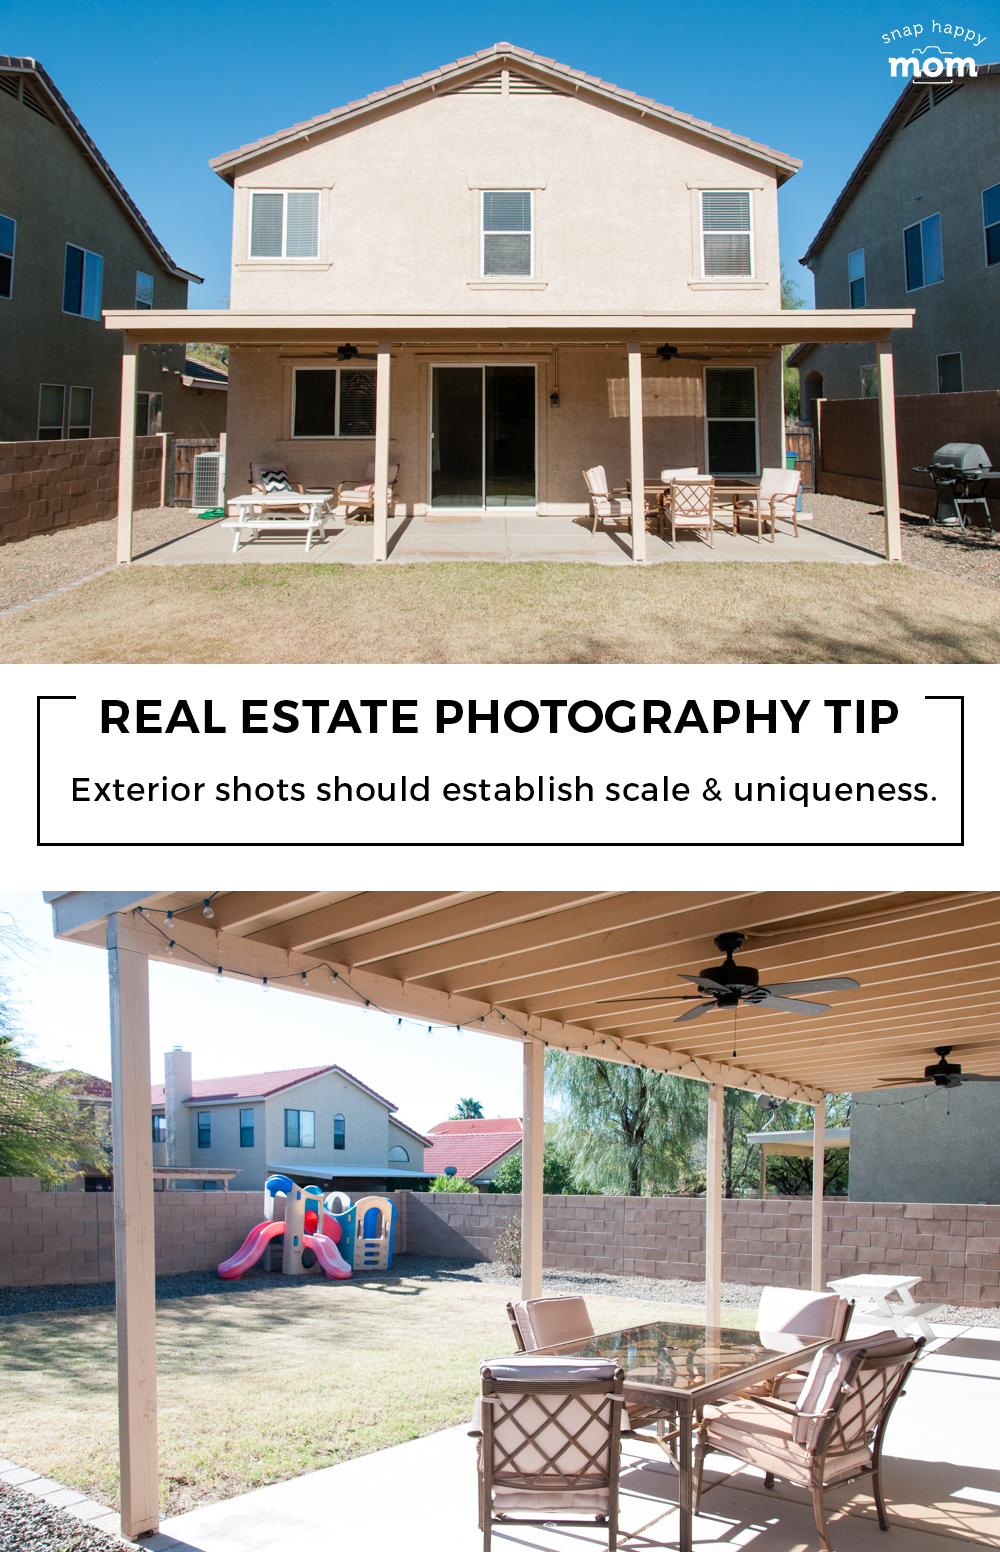 Tips for taking your own real estate photos: Exterior shots are meant to establish scale and emphasis unique architectural elements or landscaping.